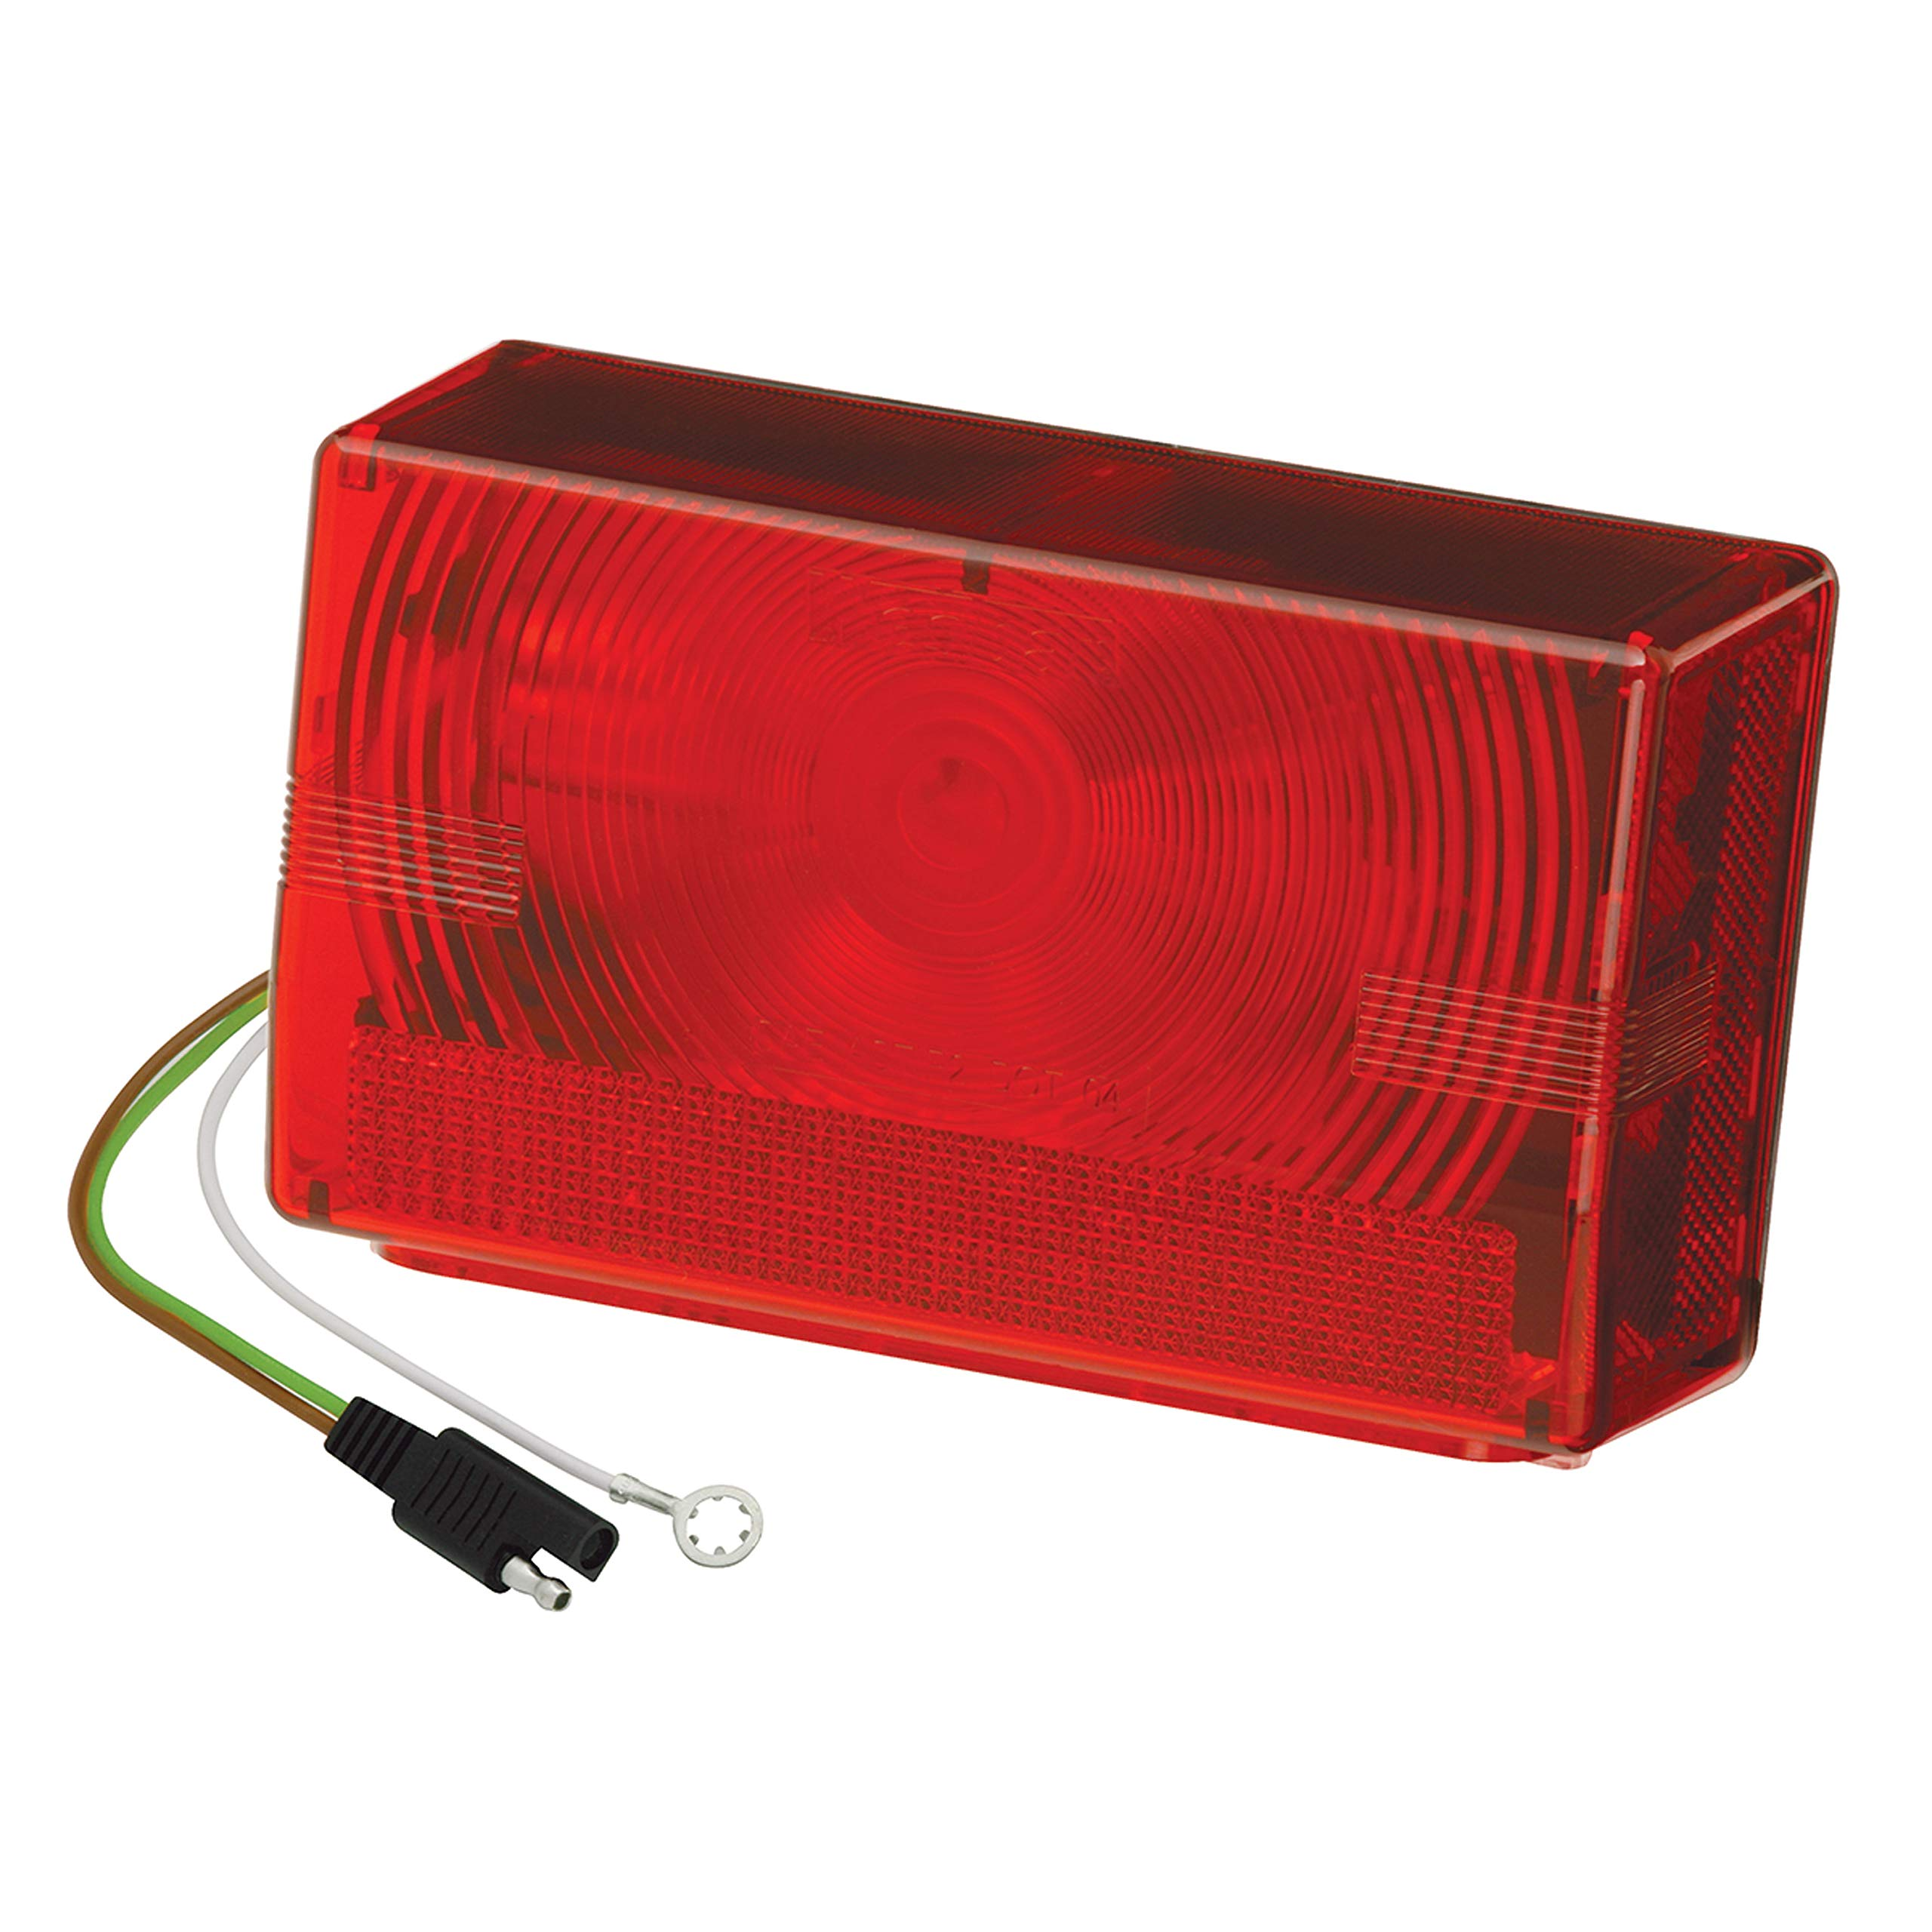 Wesbar 403075 Submersible Tail Light, Over 80'' Wide Trailer, Right/Curbside - Black by Fulton